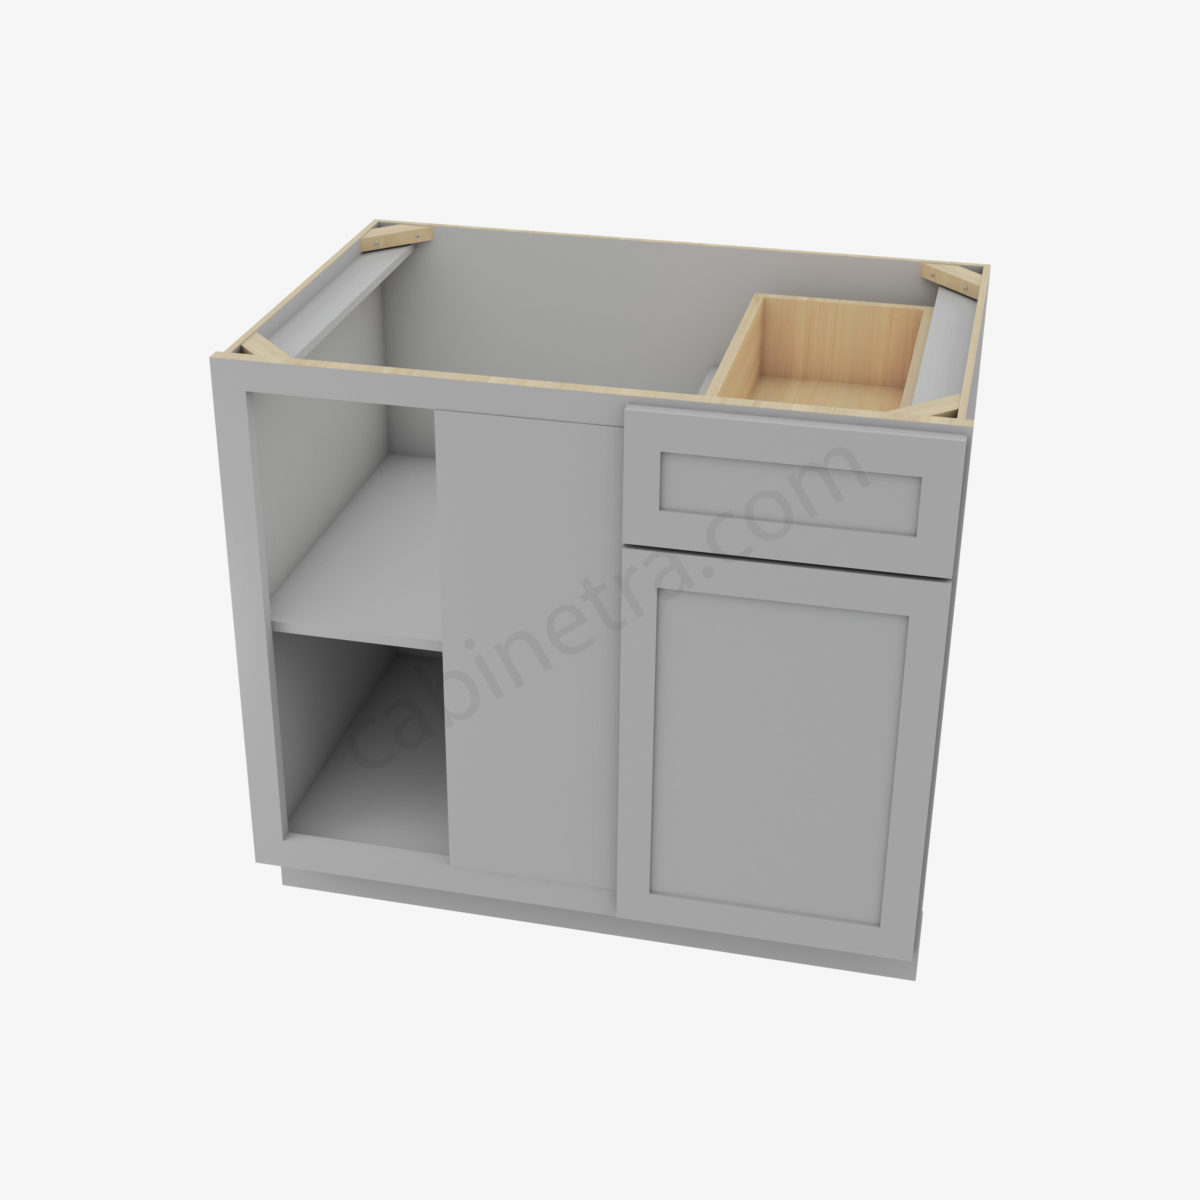 AB BBLC39 42 36W 3 Forevermark Lait Gray Shaker Cabinetra scaled